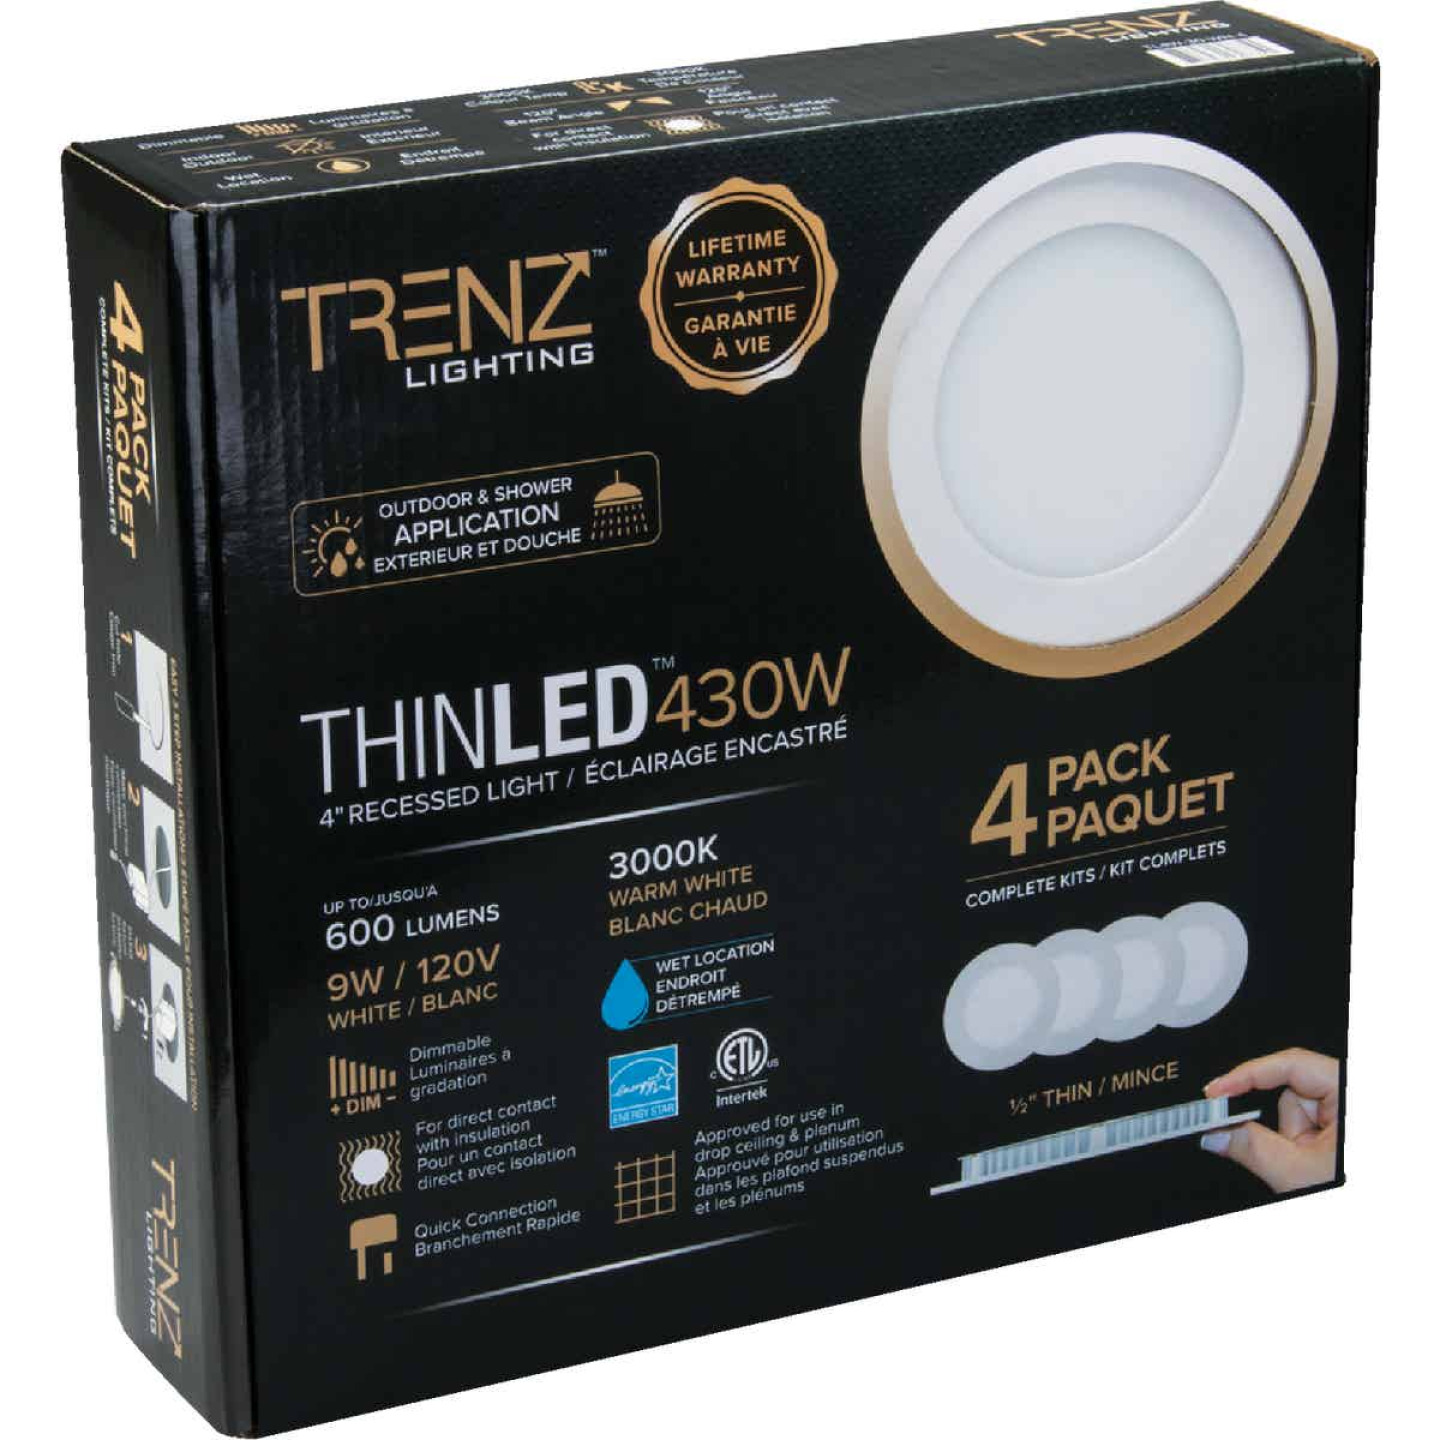 Liteline Trenz ThinLED 4 In. New Construction/Remodel IC Rated White 600 Lm. 3000K Recessed Light Kit (4-Pack) Image 1